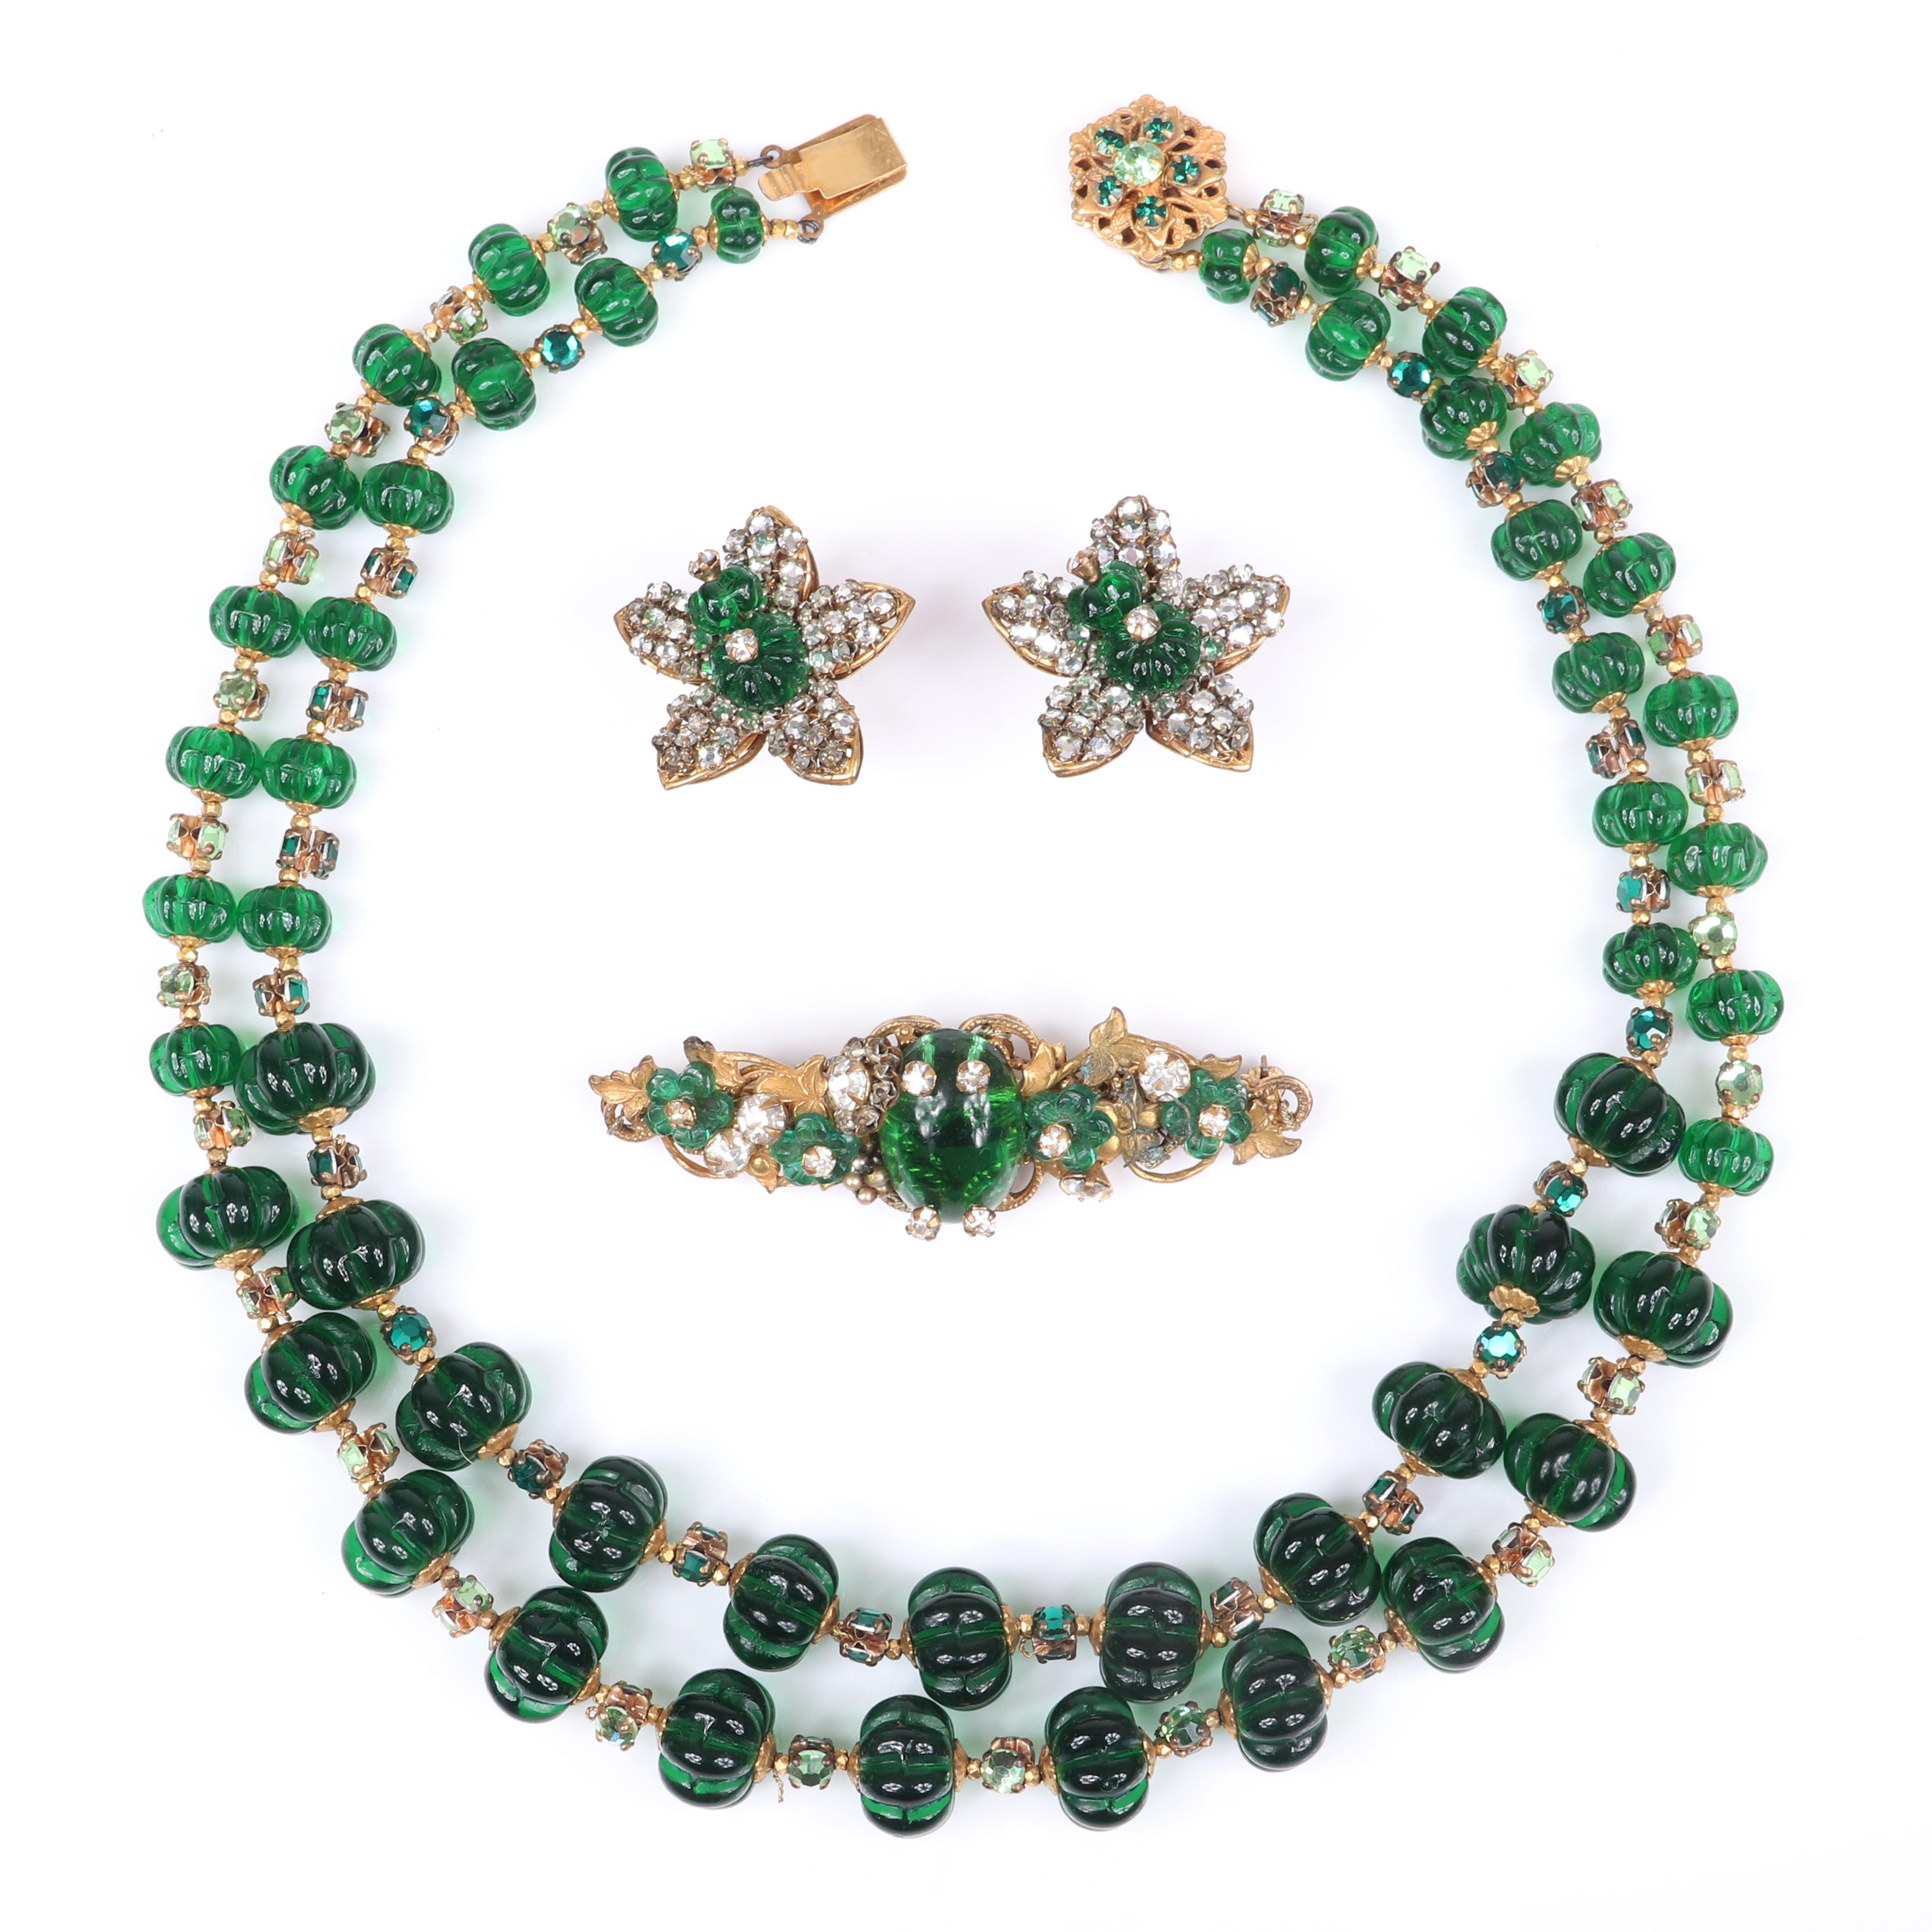 Miriam Haskell 3pc double strand necklace with green glass melon beads, pave flower earrings and brooch with green glass cabochon, flowers and rhinestones.